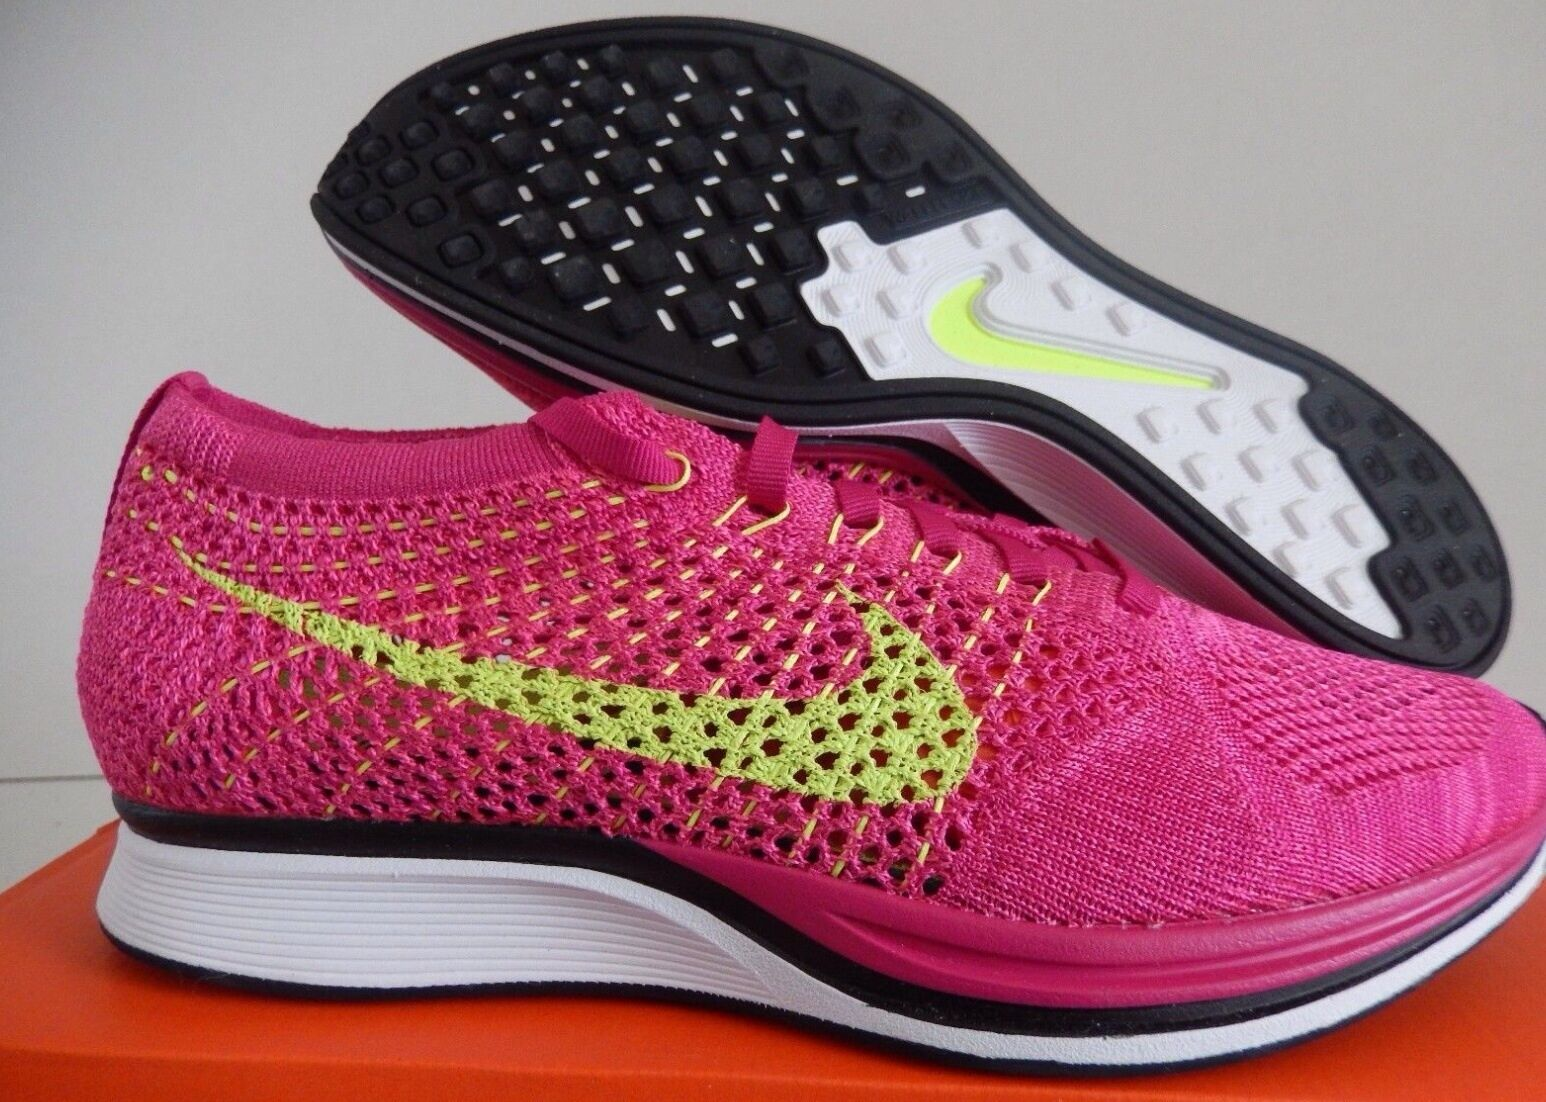 Nike uomini flyknit racer, 11 allenatore di fireberry-volt-pink flash sz 11 racer, [526628-607] acc05b